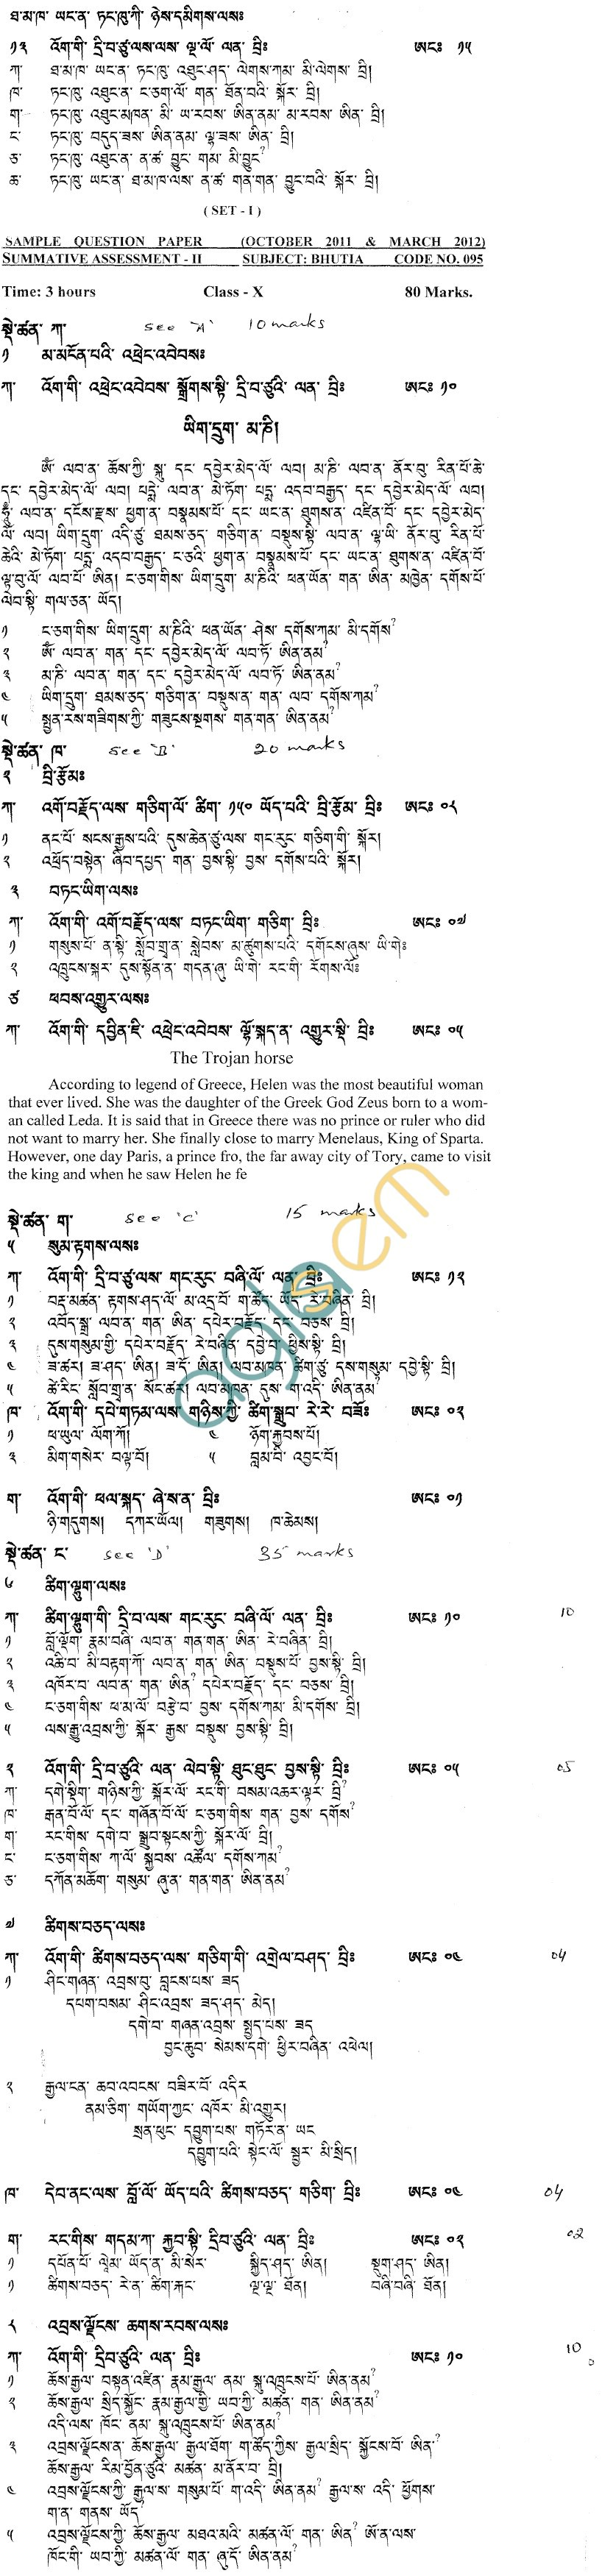 CBSE Class IX & X Sample Papers 2014 (Second Term) Bhutia